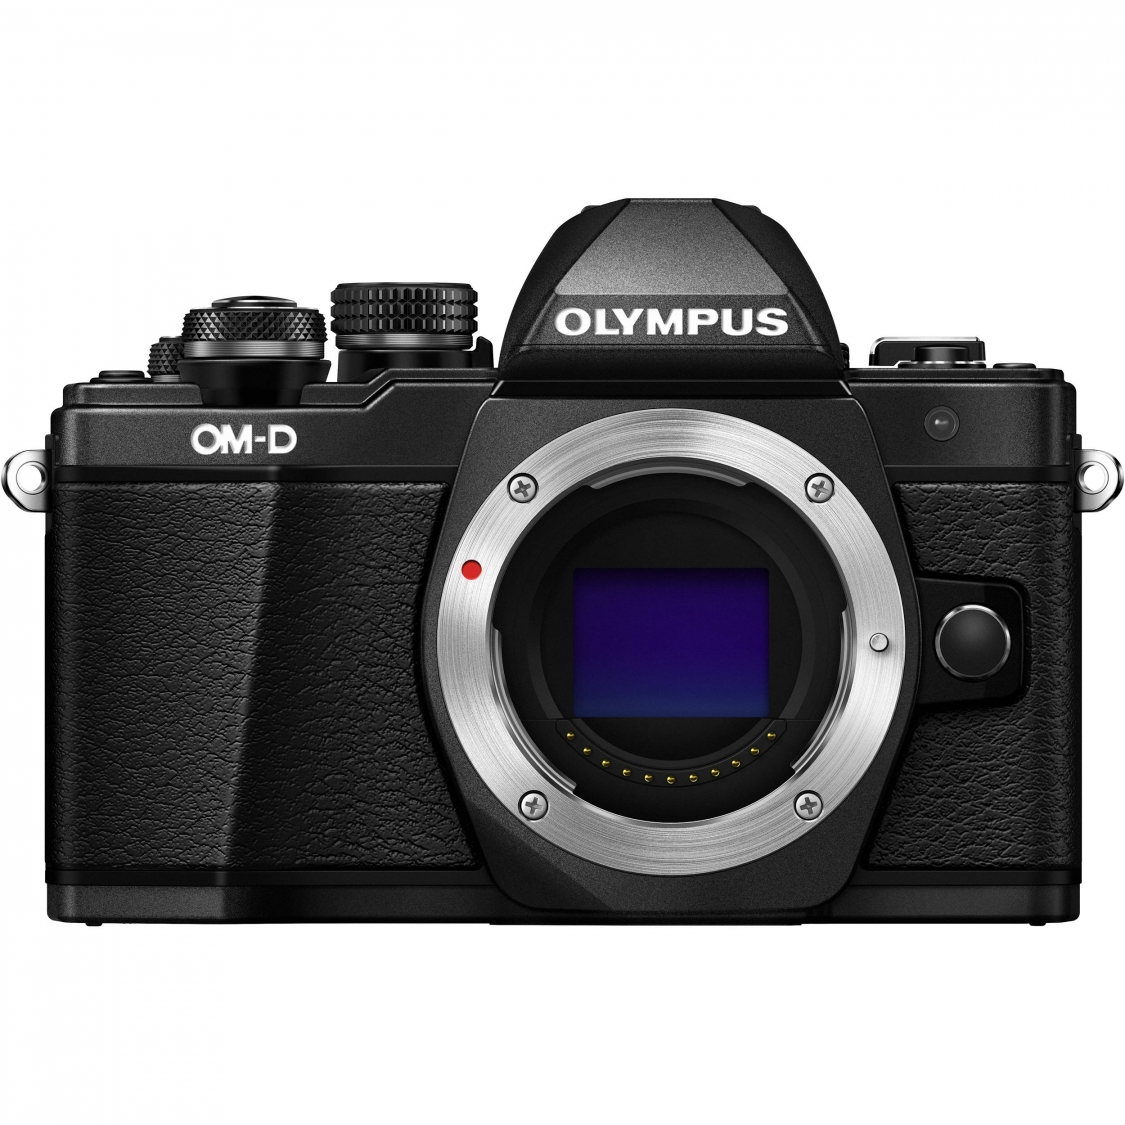 Olympus OM-D E-M5 Mark II Camera Body (black)